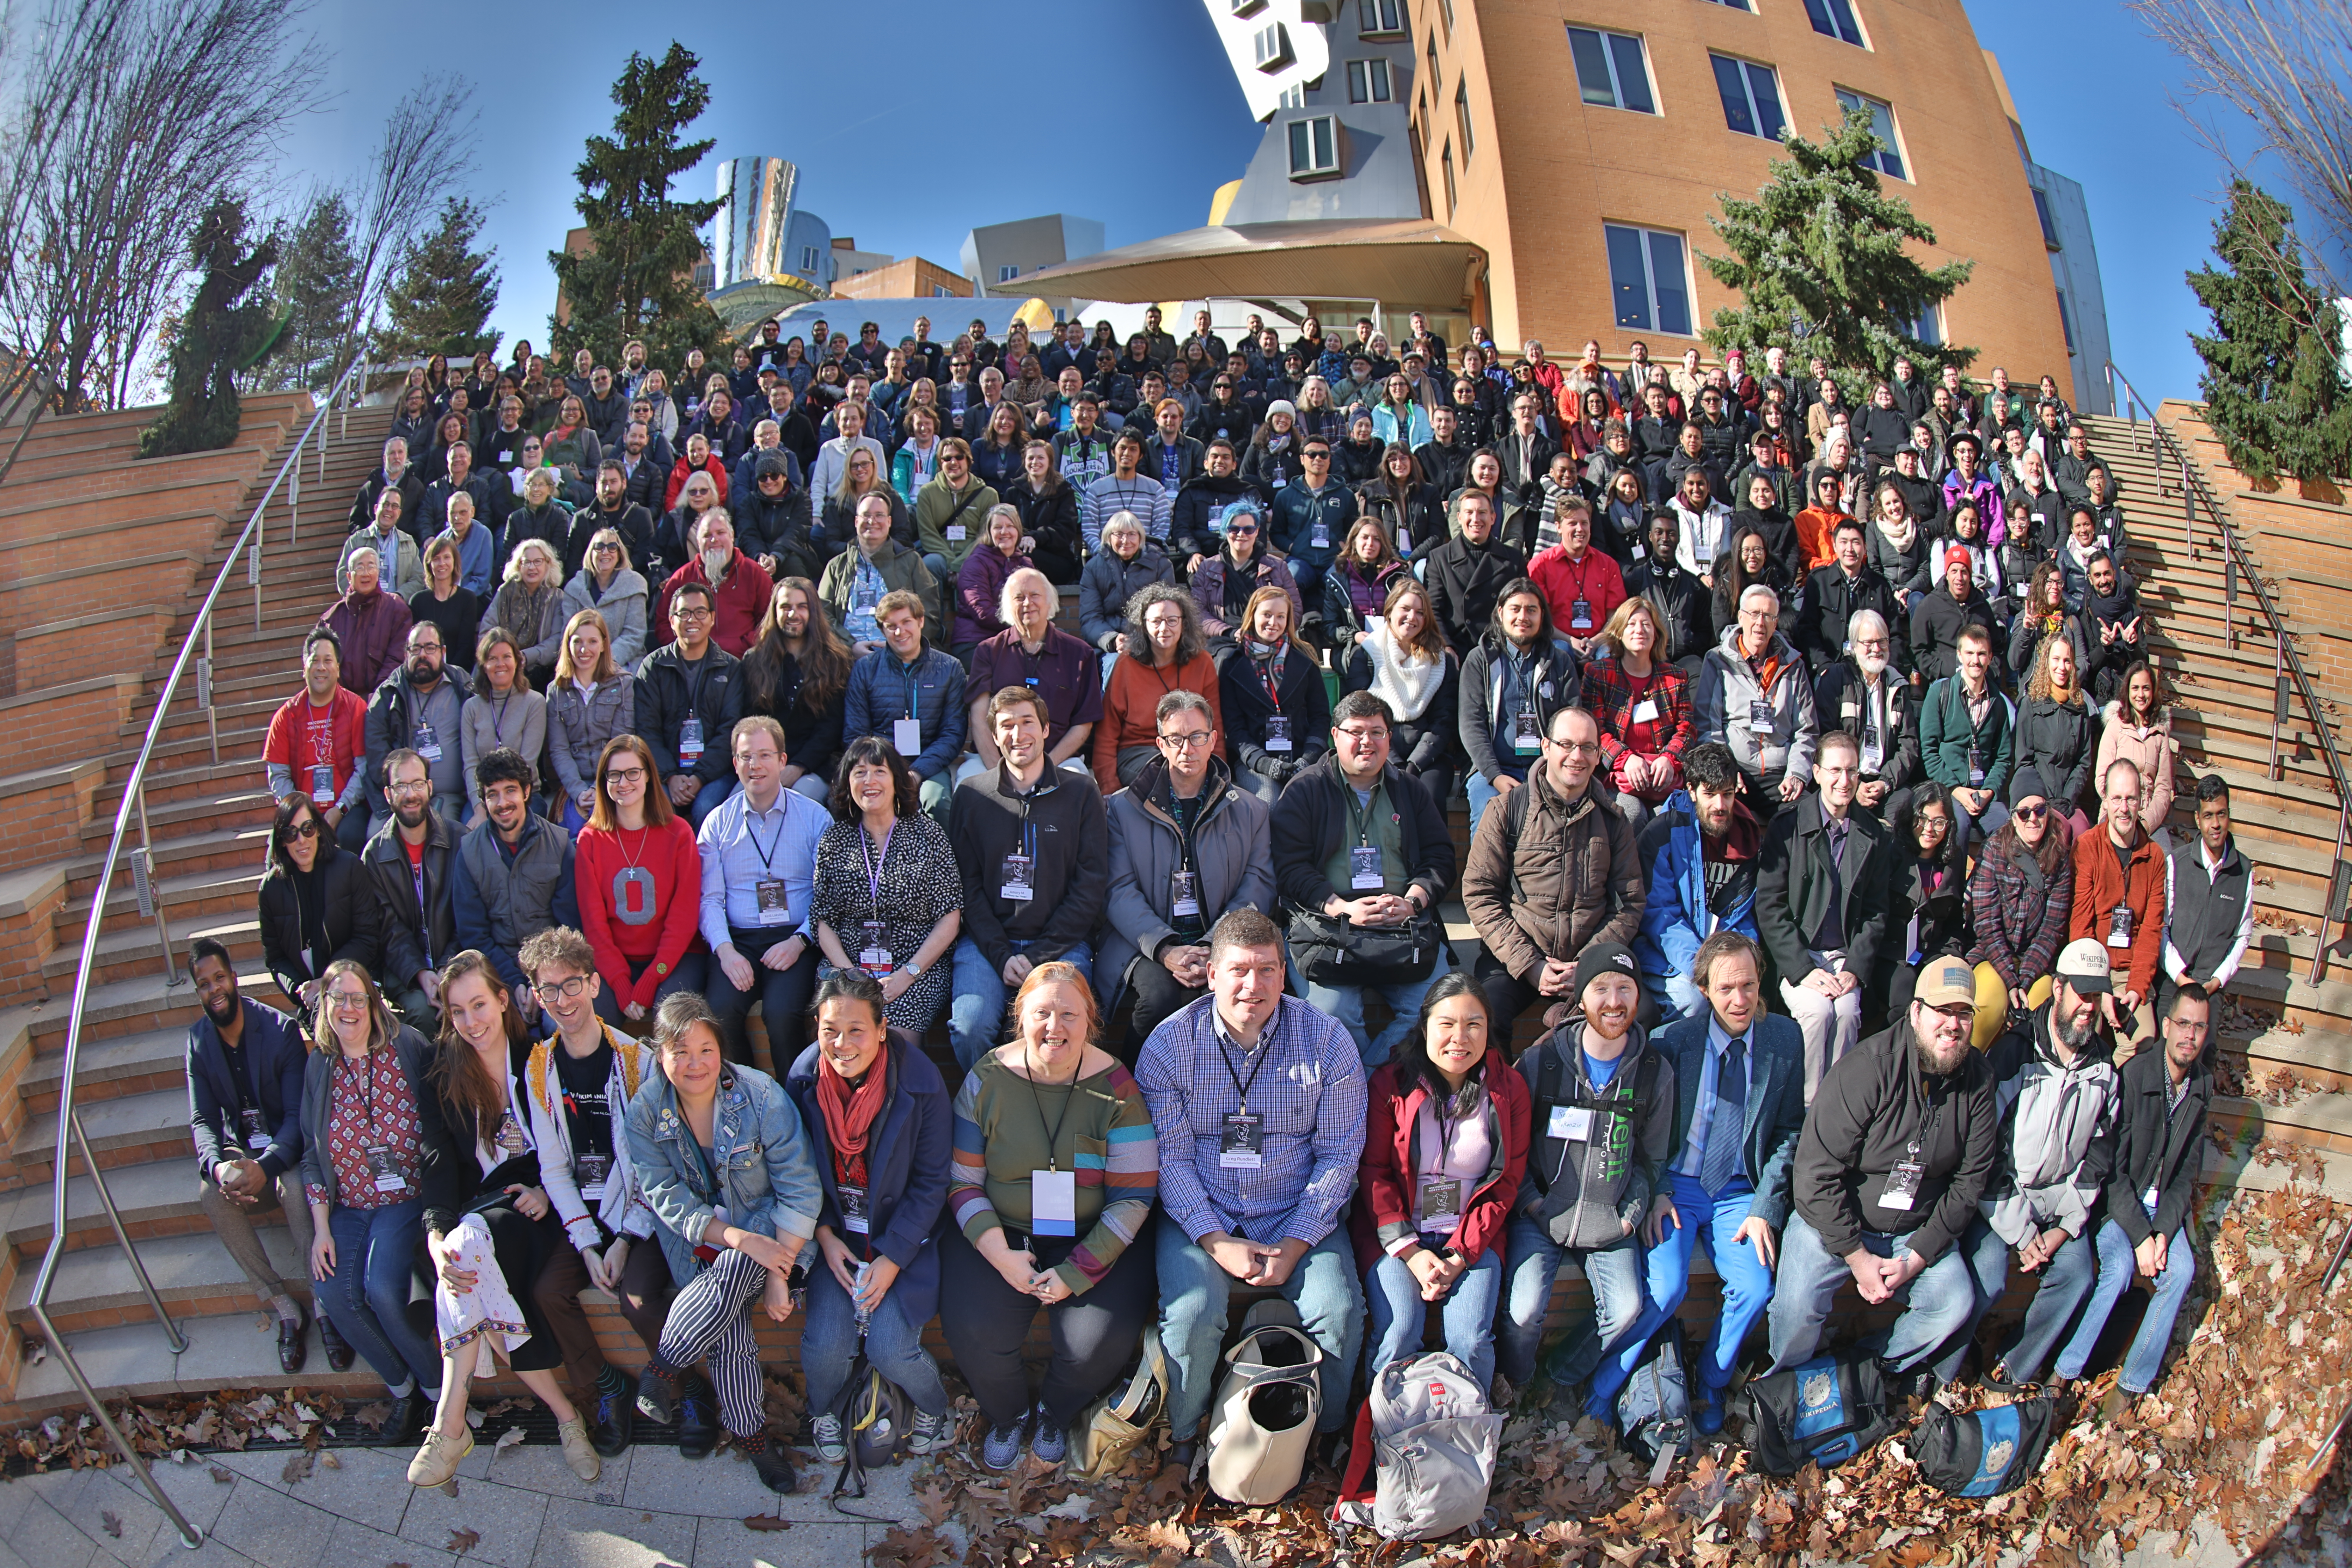 An outdoor group photo of the attendees of WikiConference North America 2019